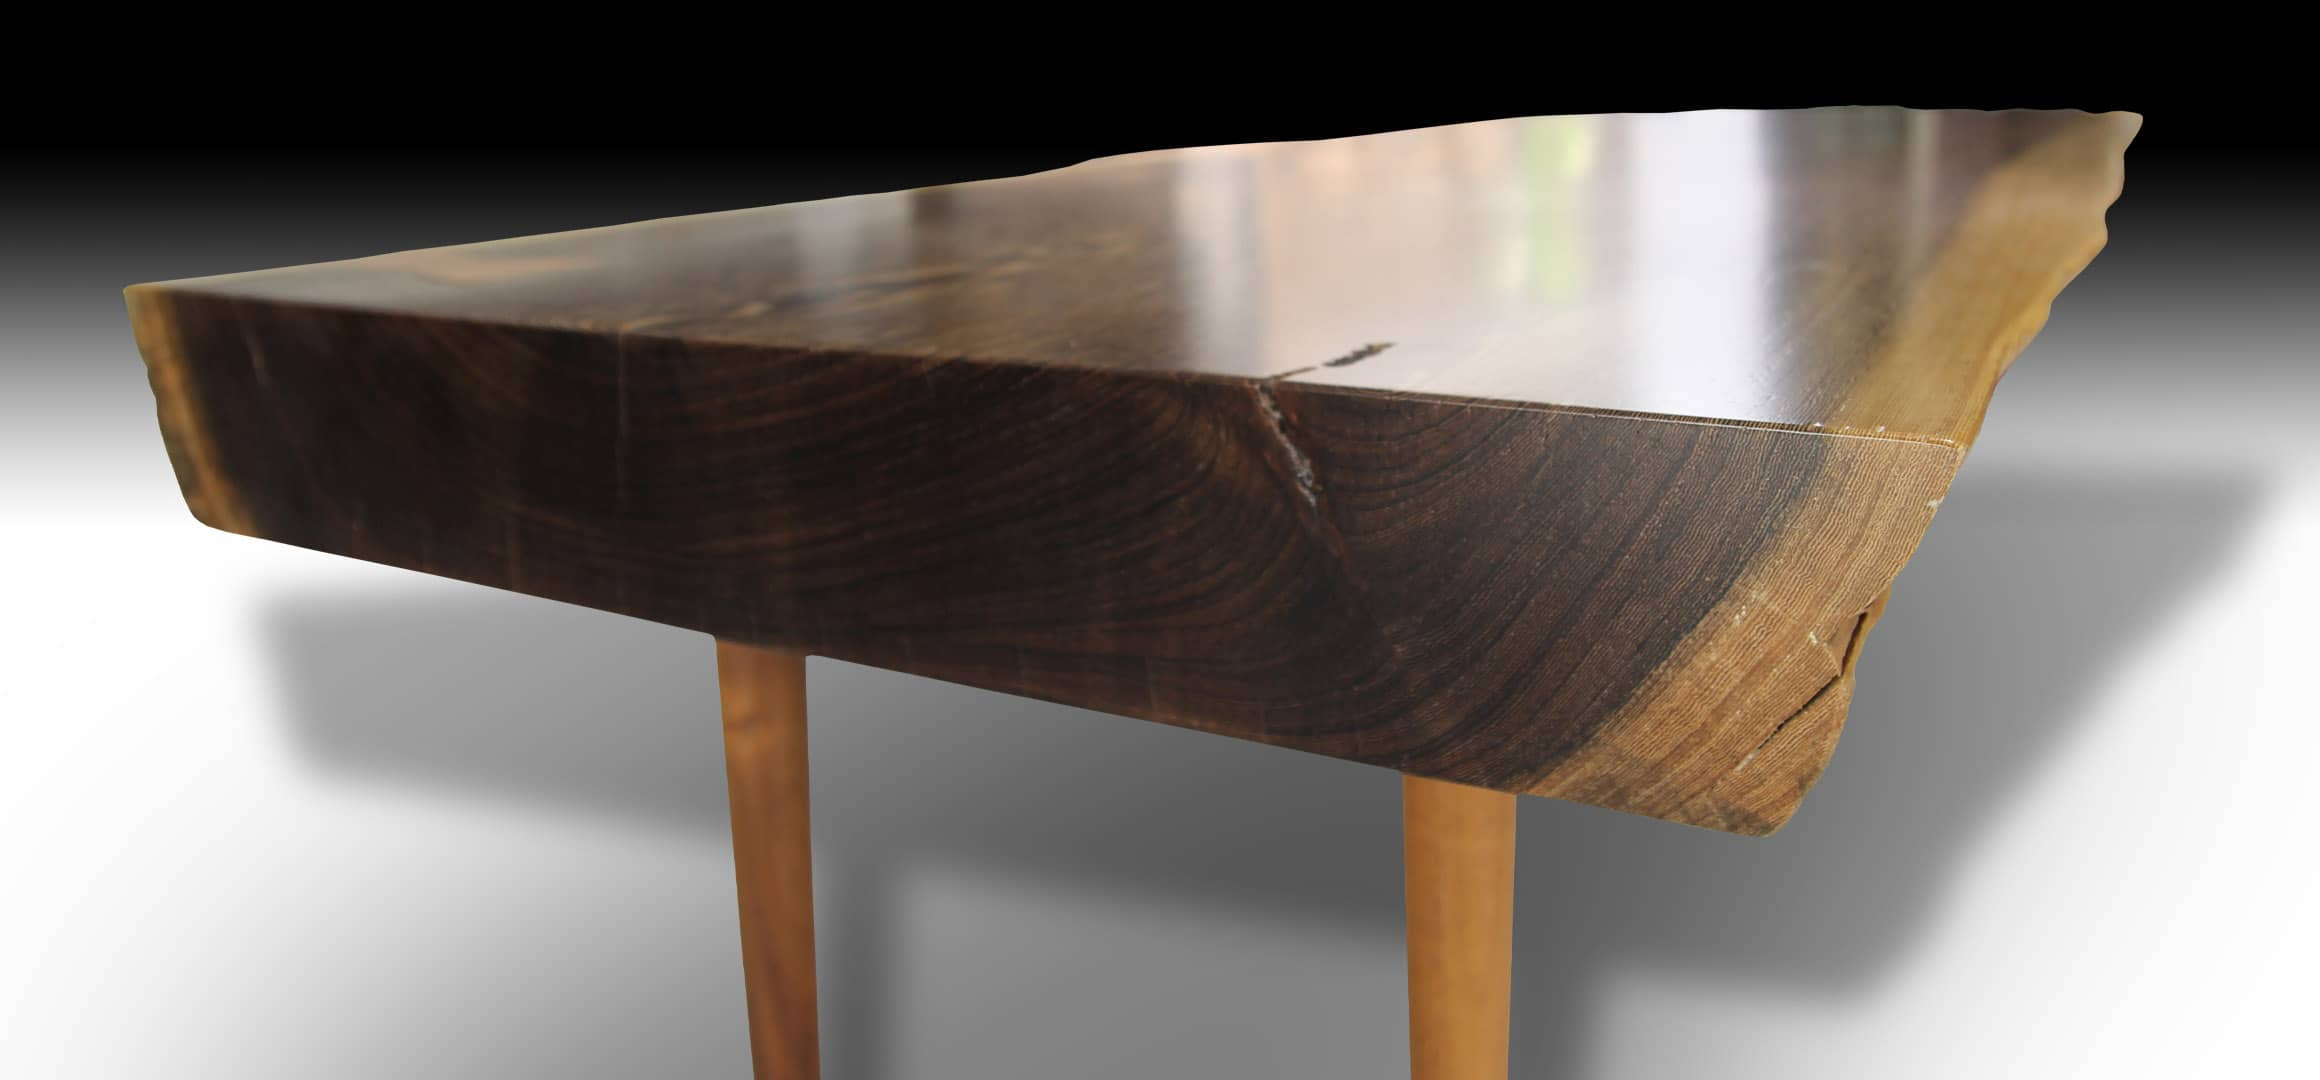 Phoenix live edge Suar wood coffee table surface view from the side